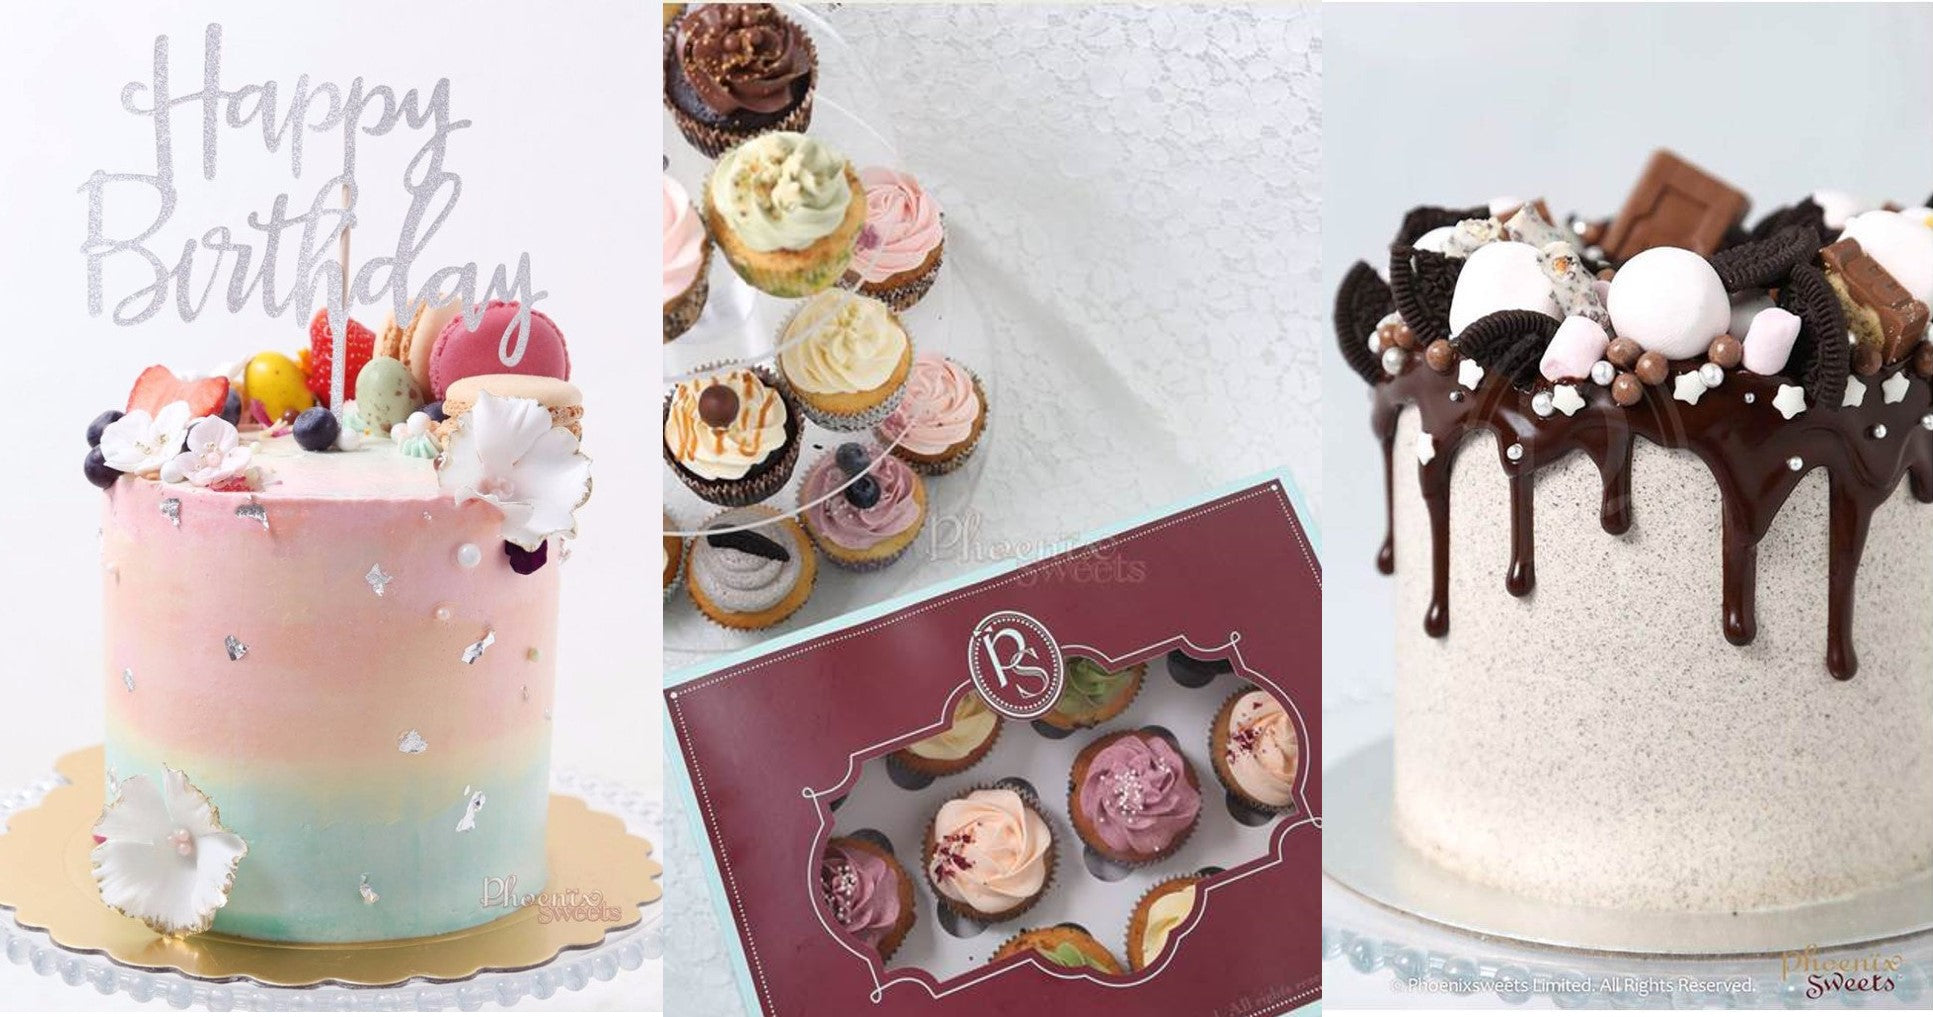 Phoenix Sweets Butter Cream Cake and Cupcake